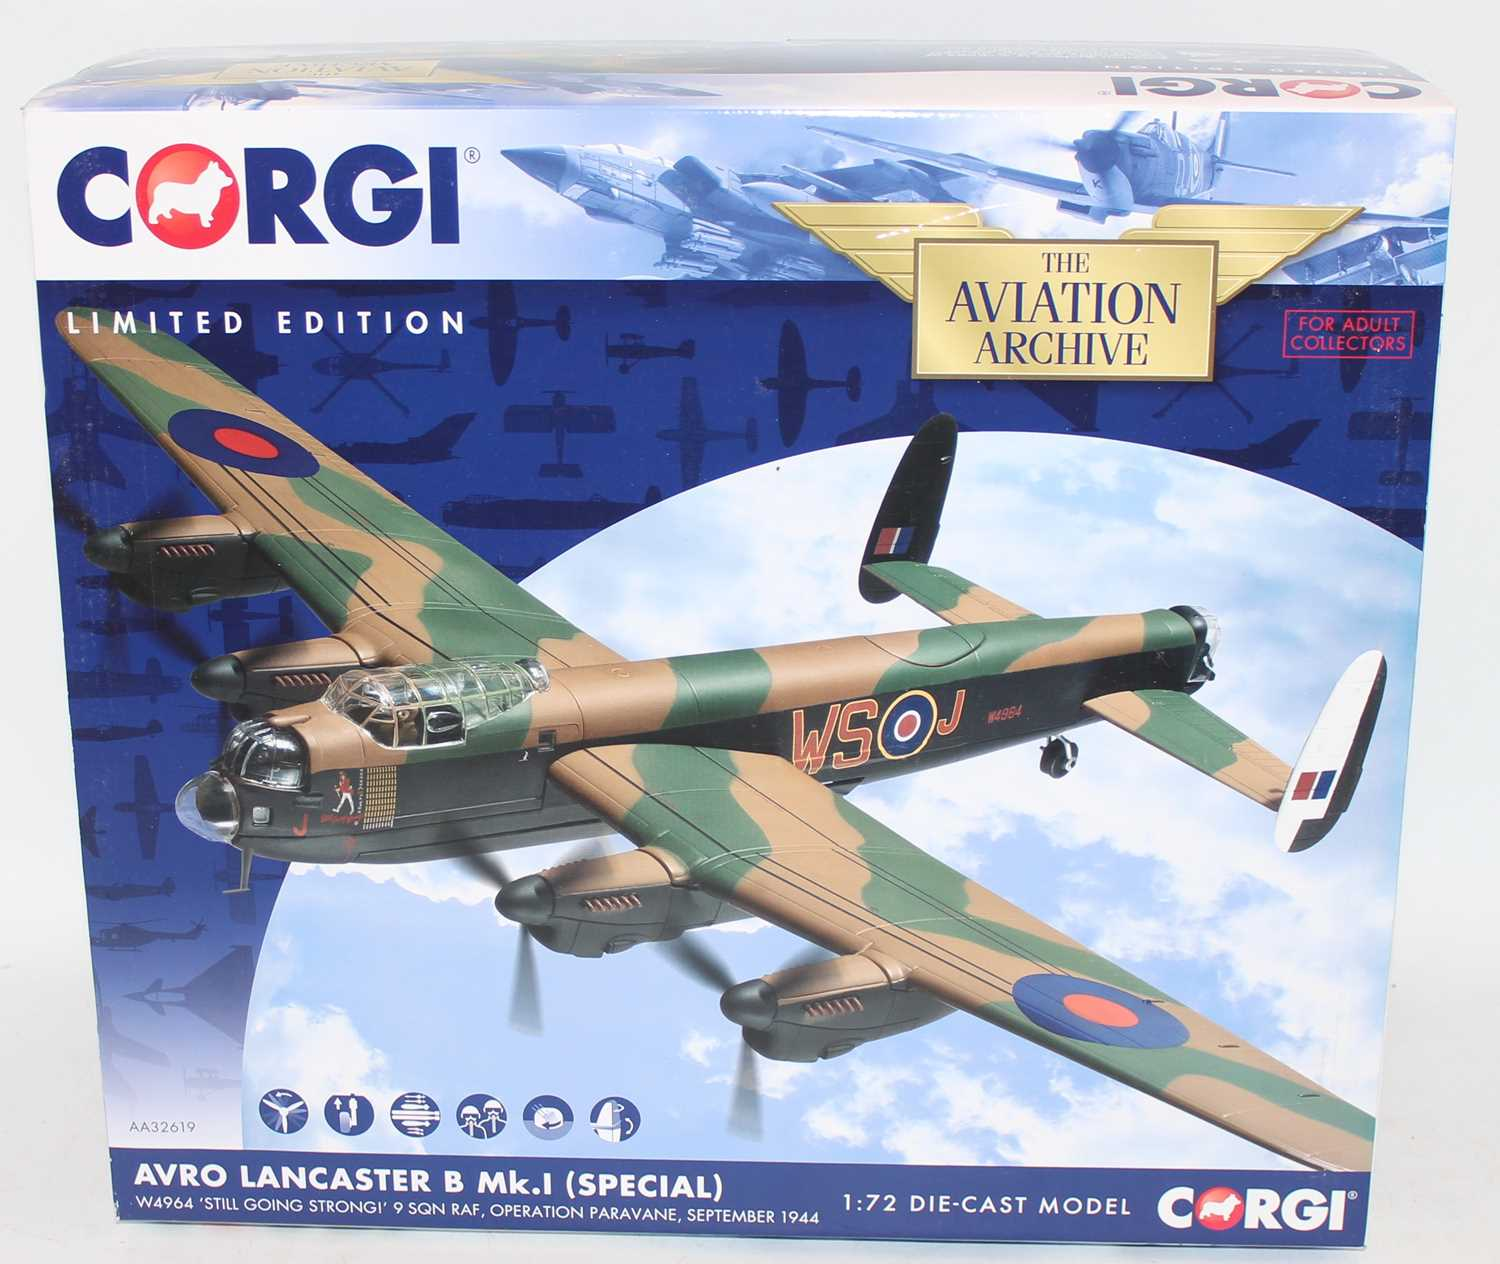 A Corgi Aviation Archive model No. AA32619 1/72 scale limited edition diecast model of an Avro